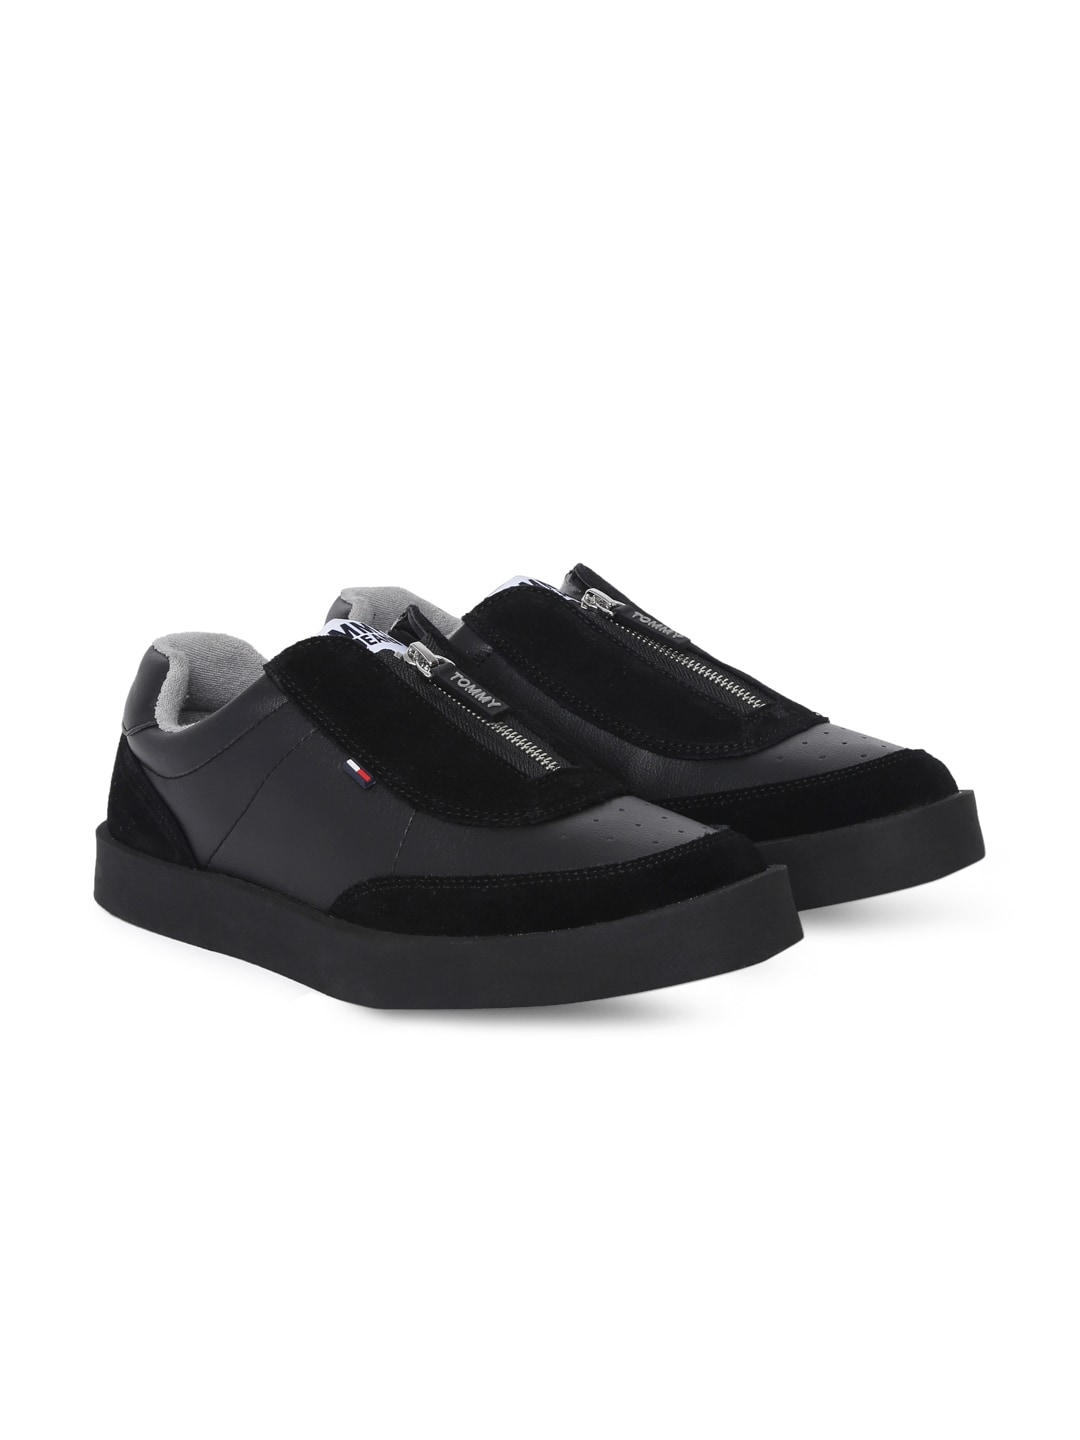 8408cb42f Shoes for Men - Buy Mens Shoes Online at Best Price